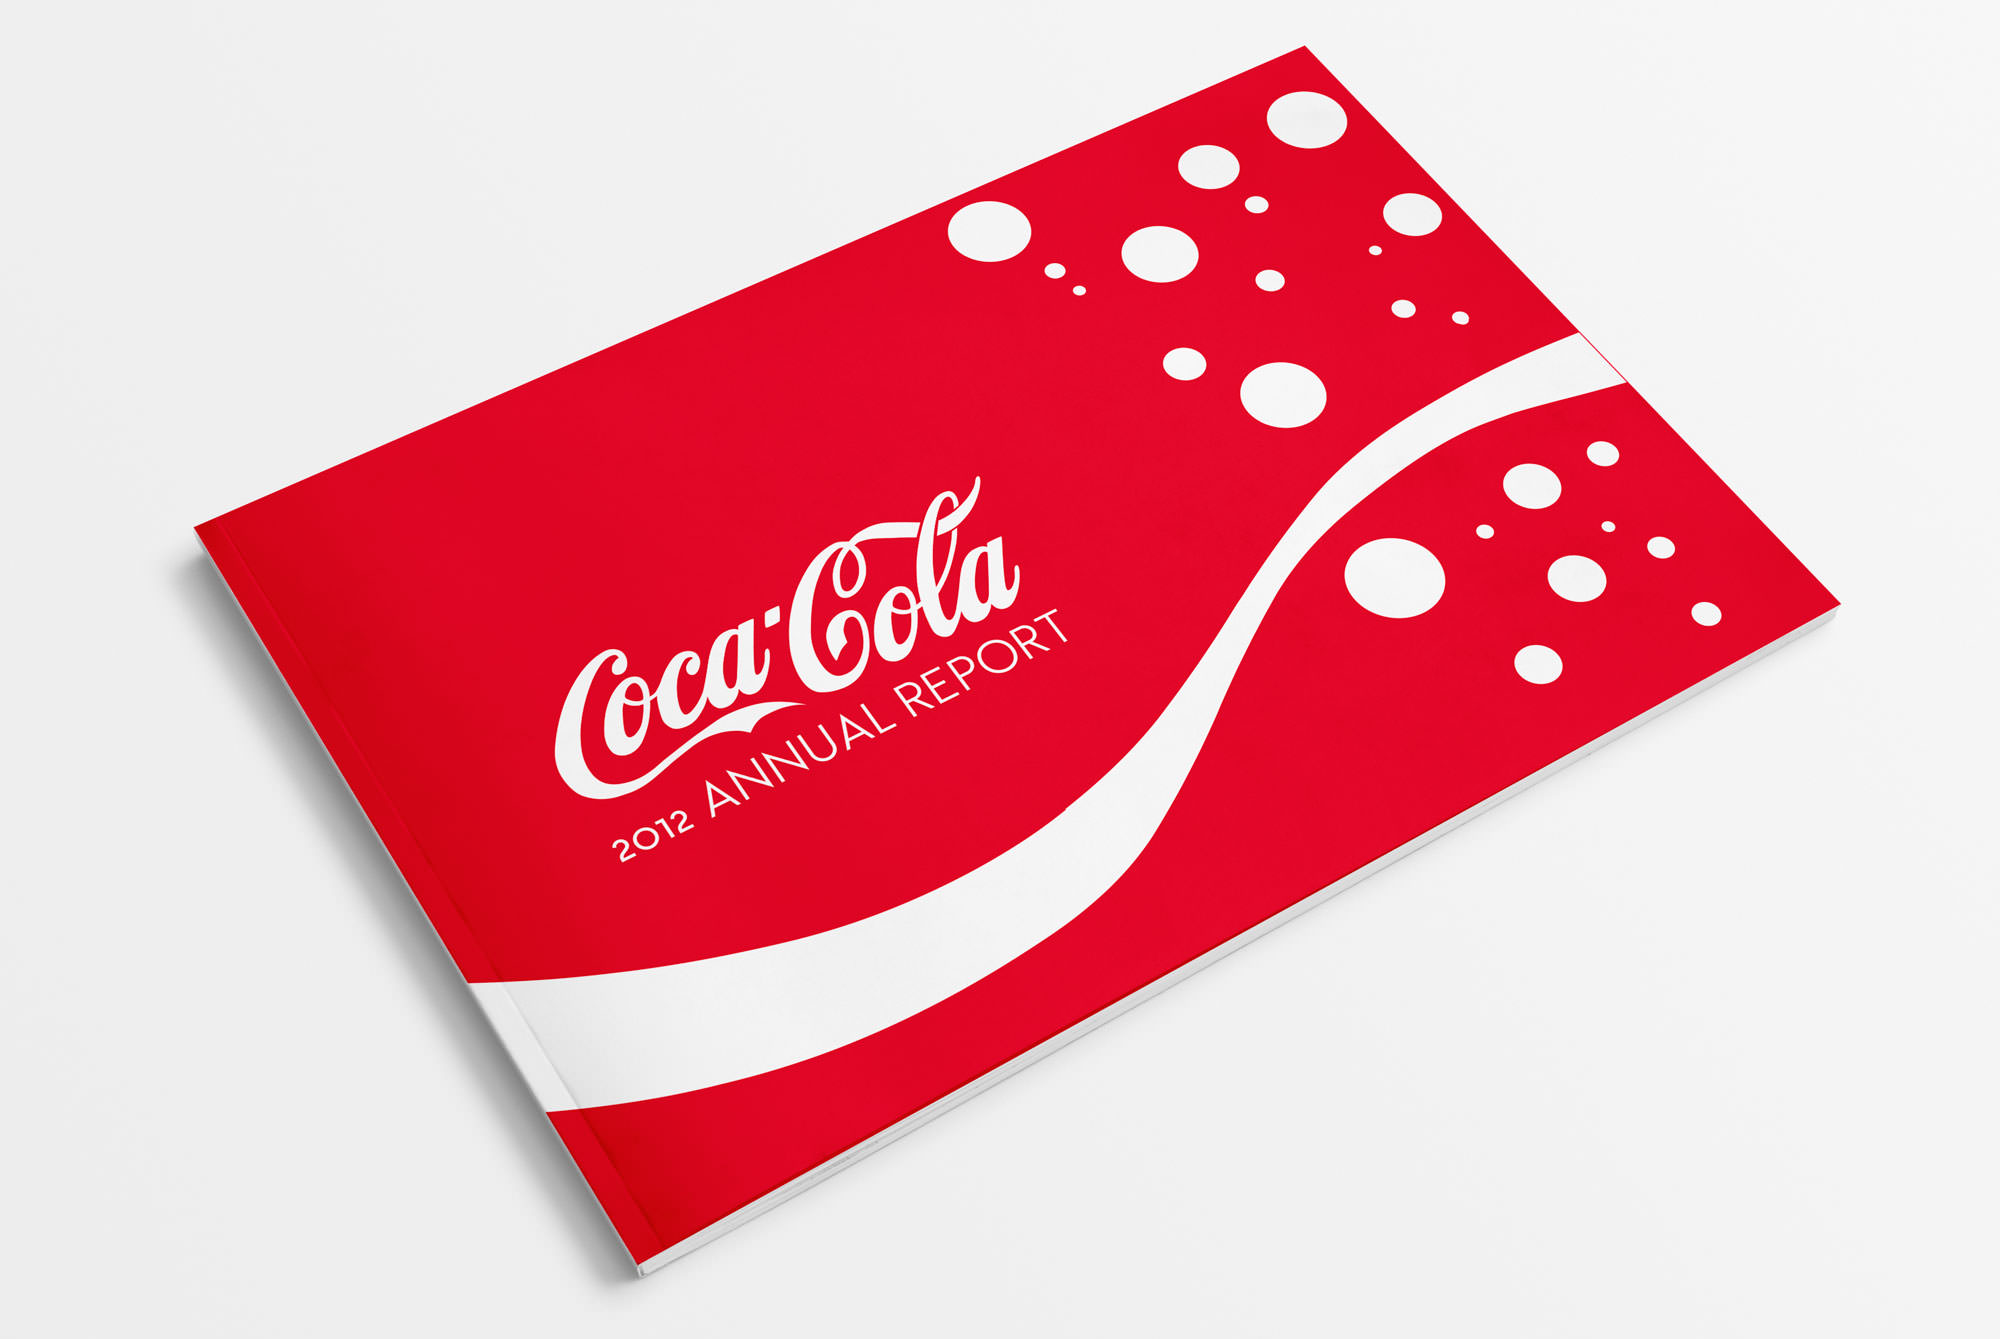 financial reporting of coca cola company Updated key statistics for coca-cola co - including ko margins, p/e ratio, valuation, profitability, company description, and other stock analysis data.